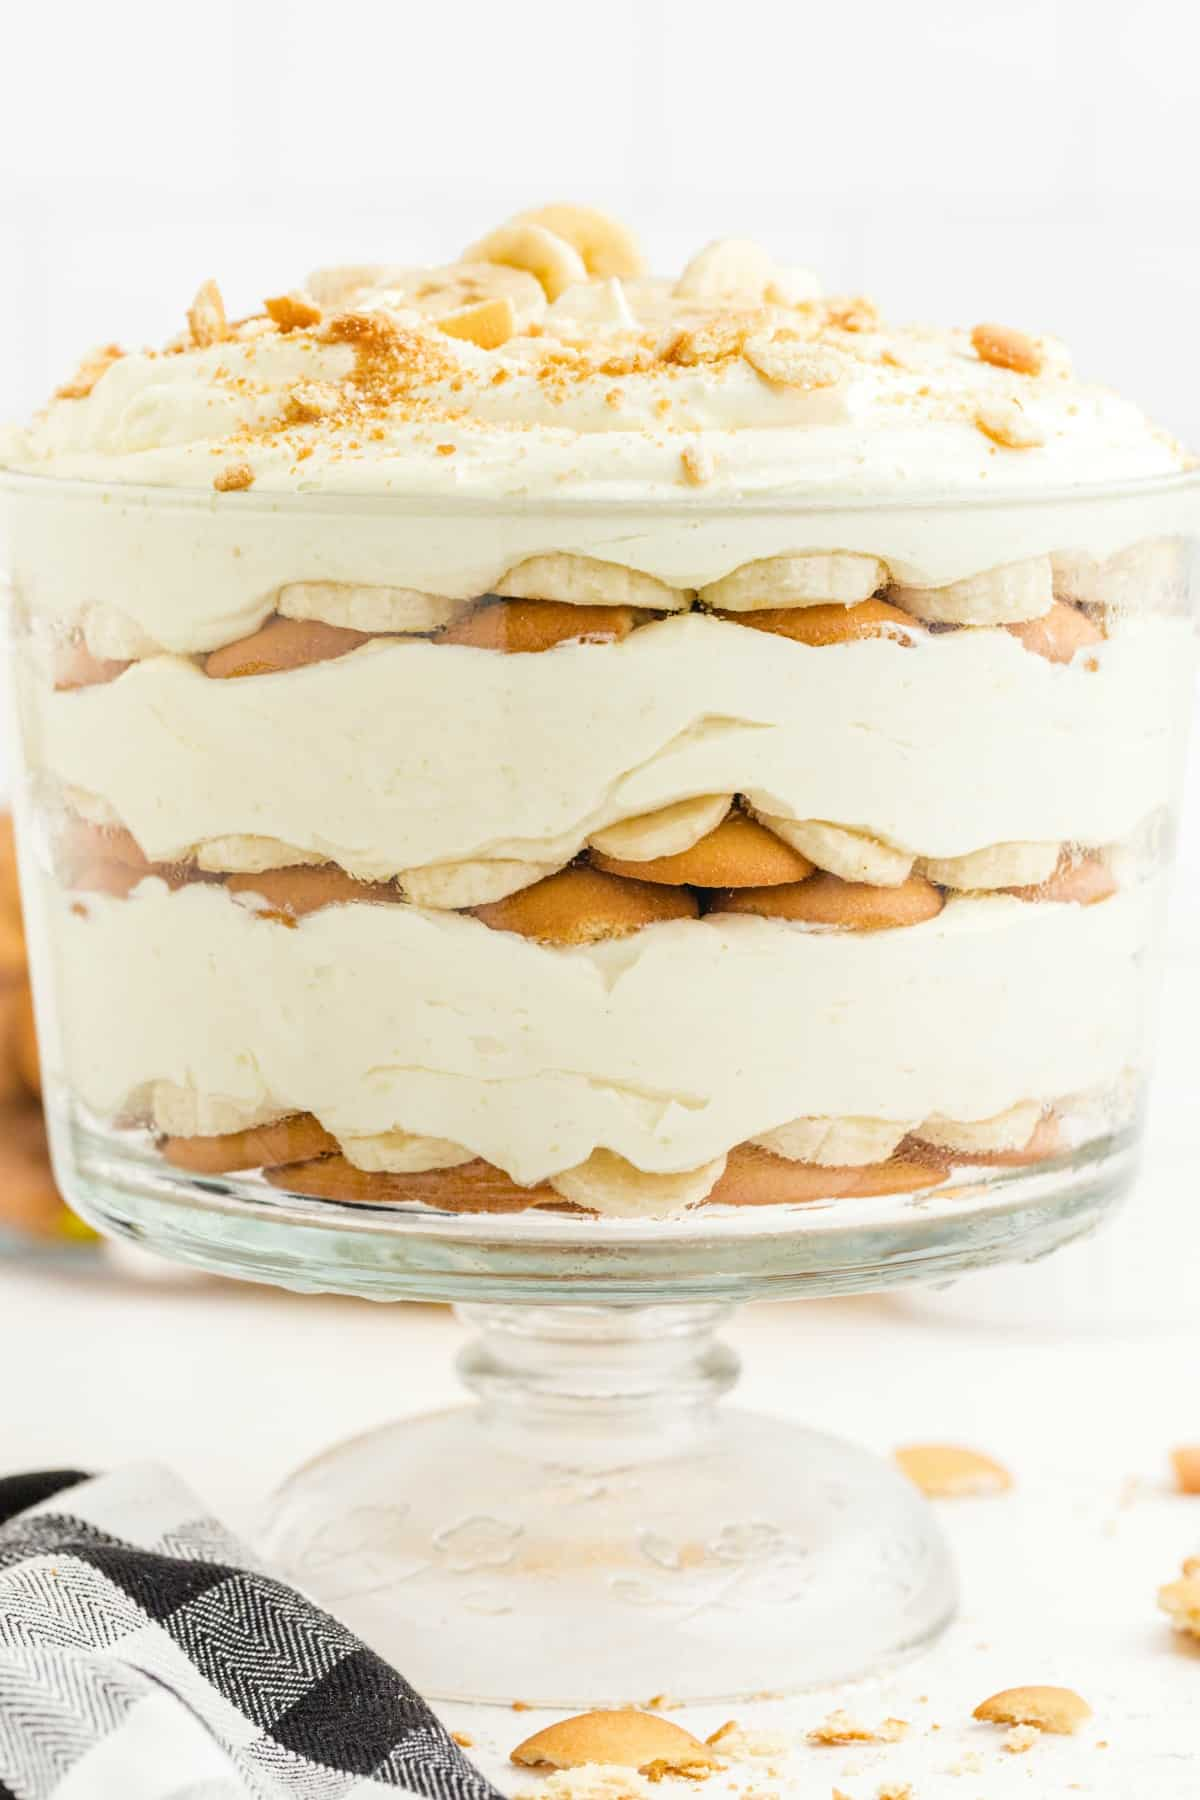 finished Magnolia Bakery Banana Pudding